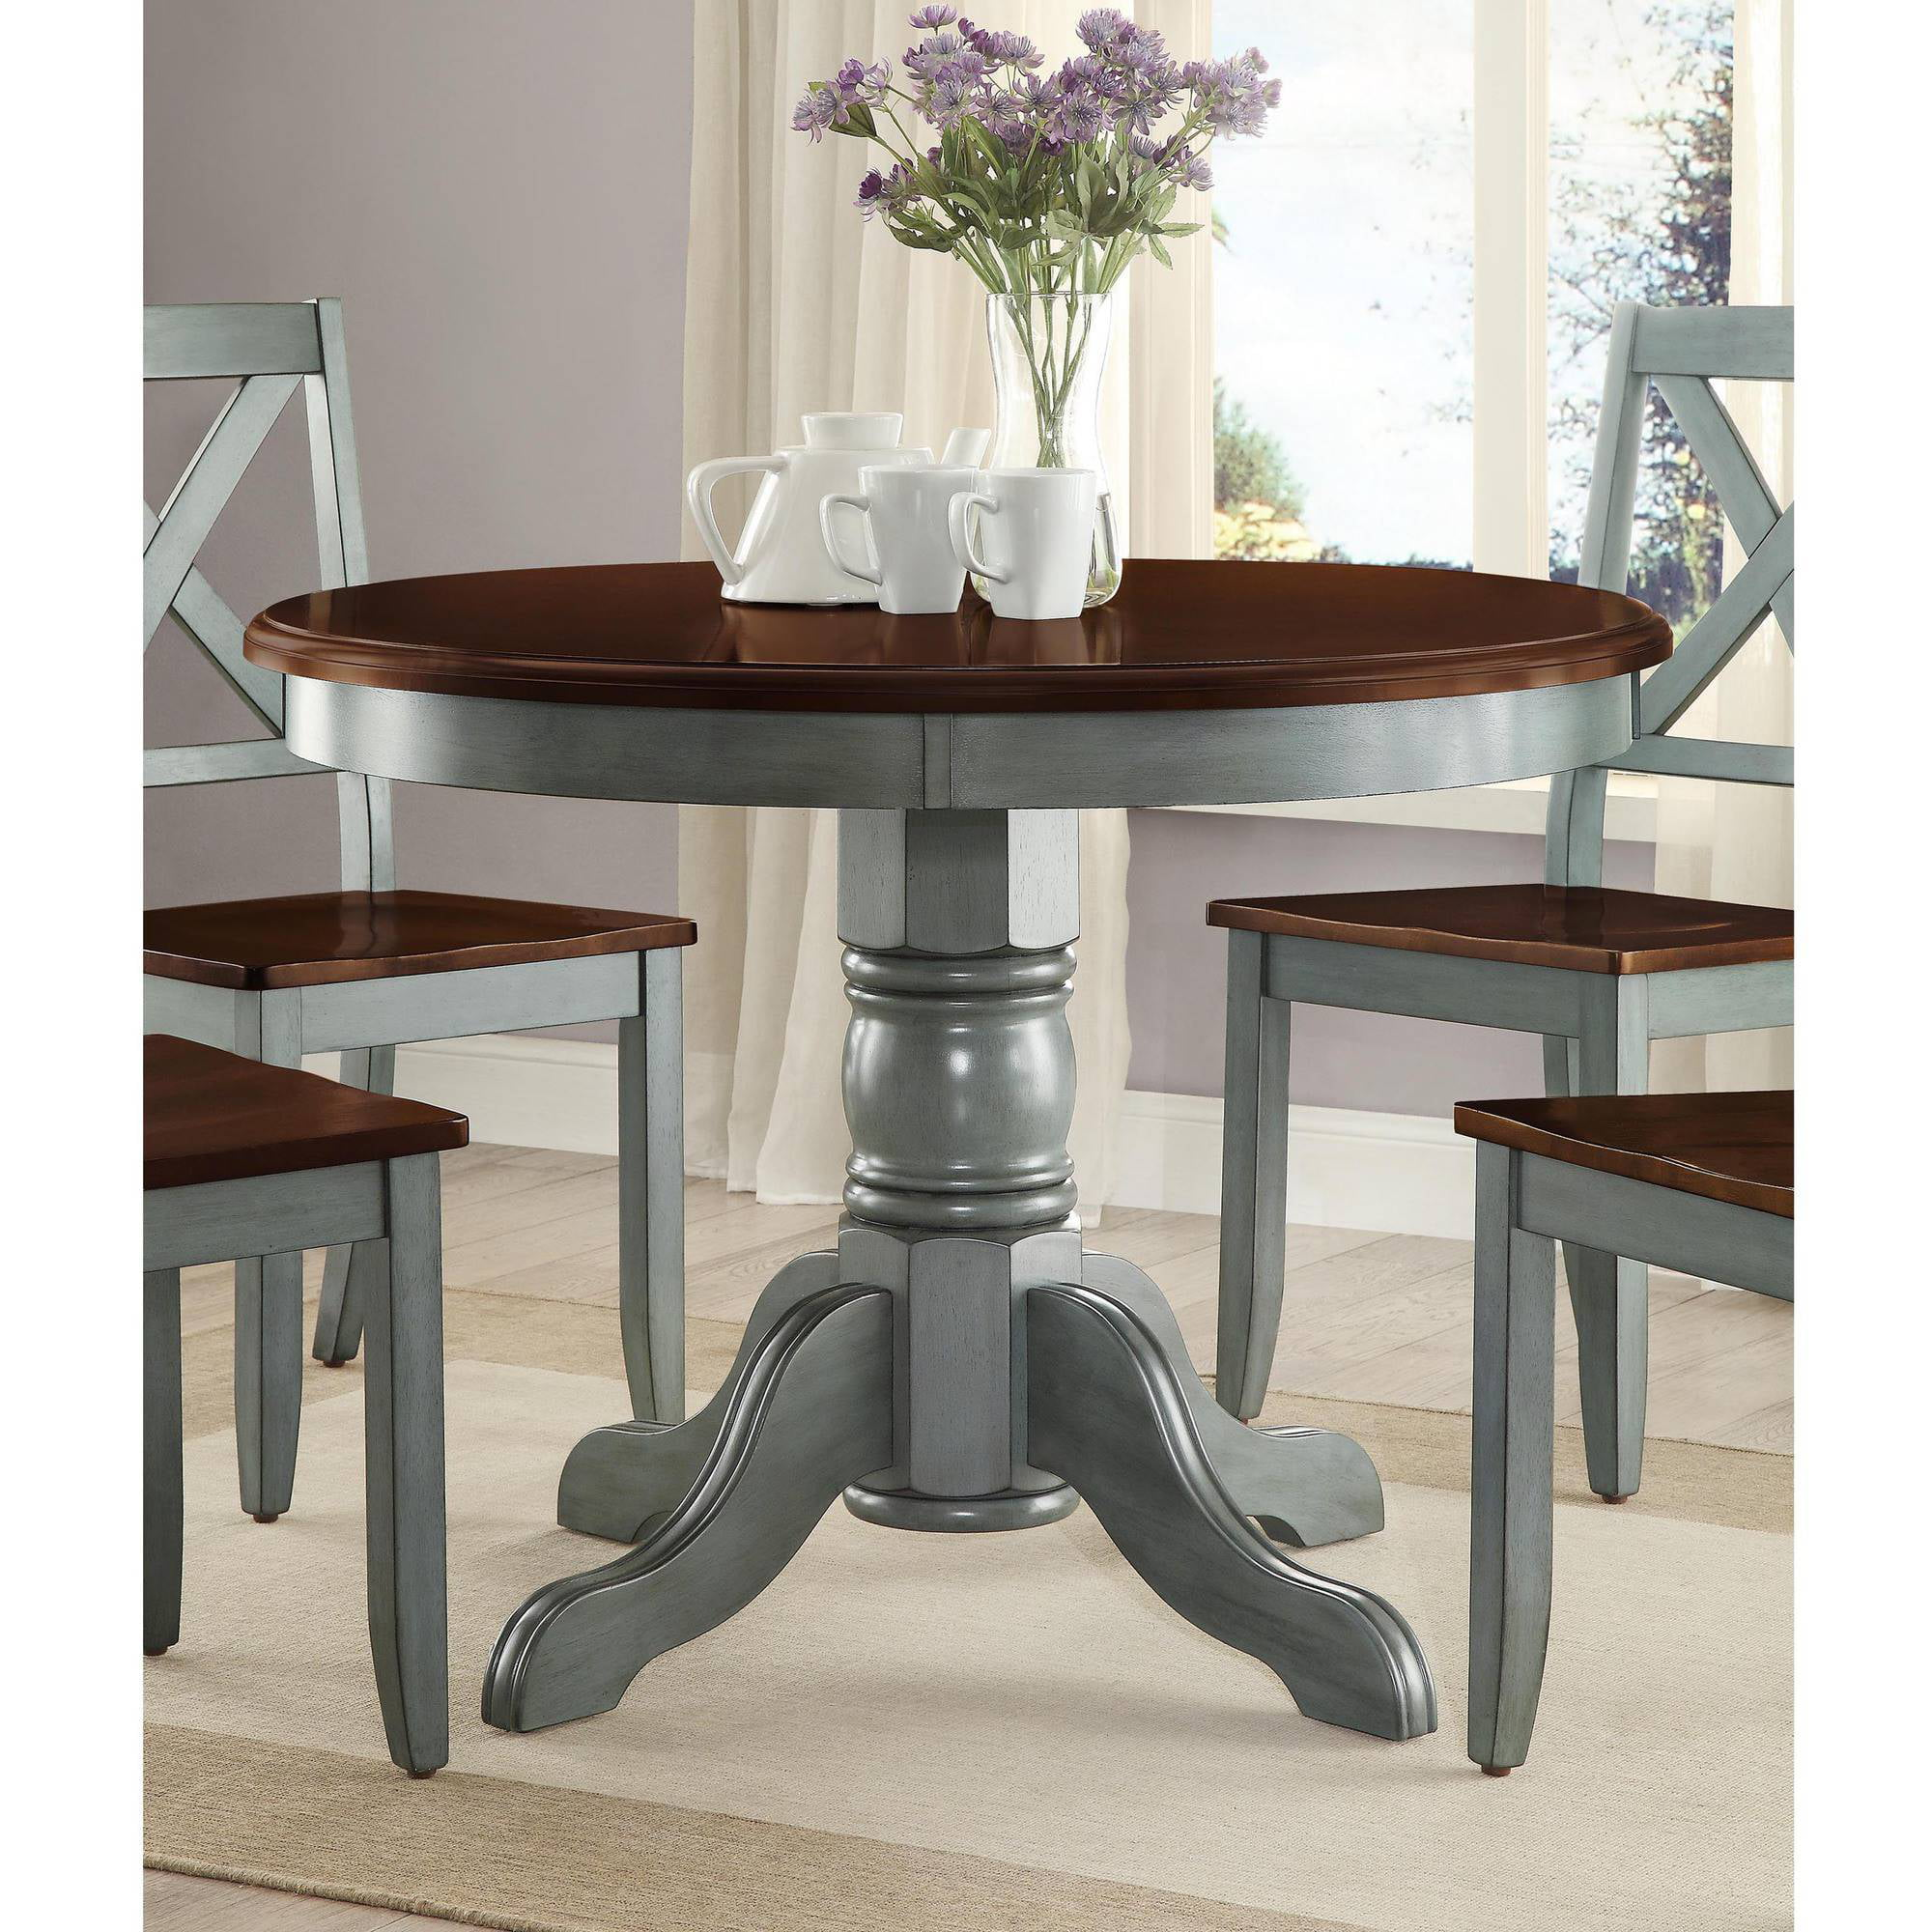 Better Homes and Gardens Cambridge Place Dining Table, Blue by Woodpark Furniture Vietnam Co.,Ltd